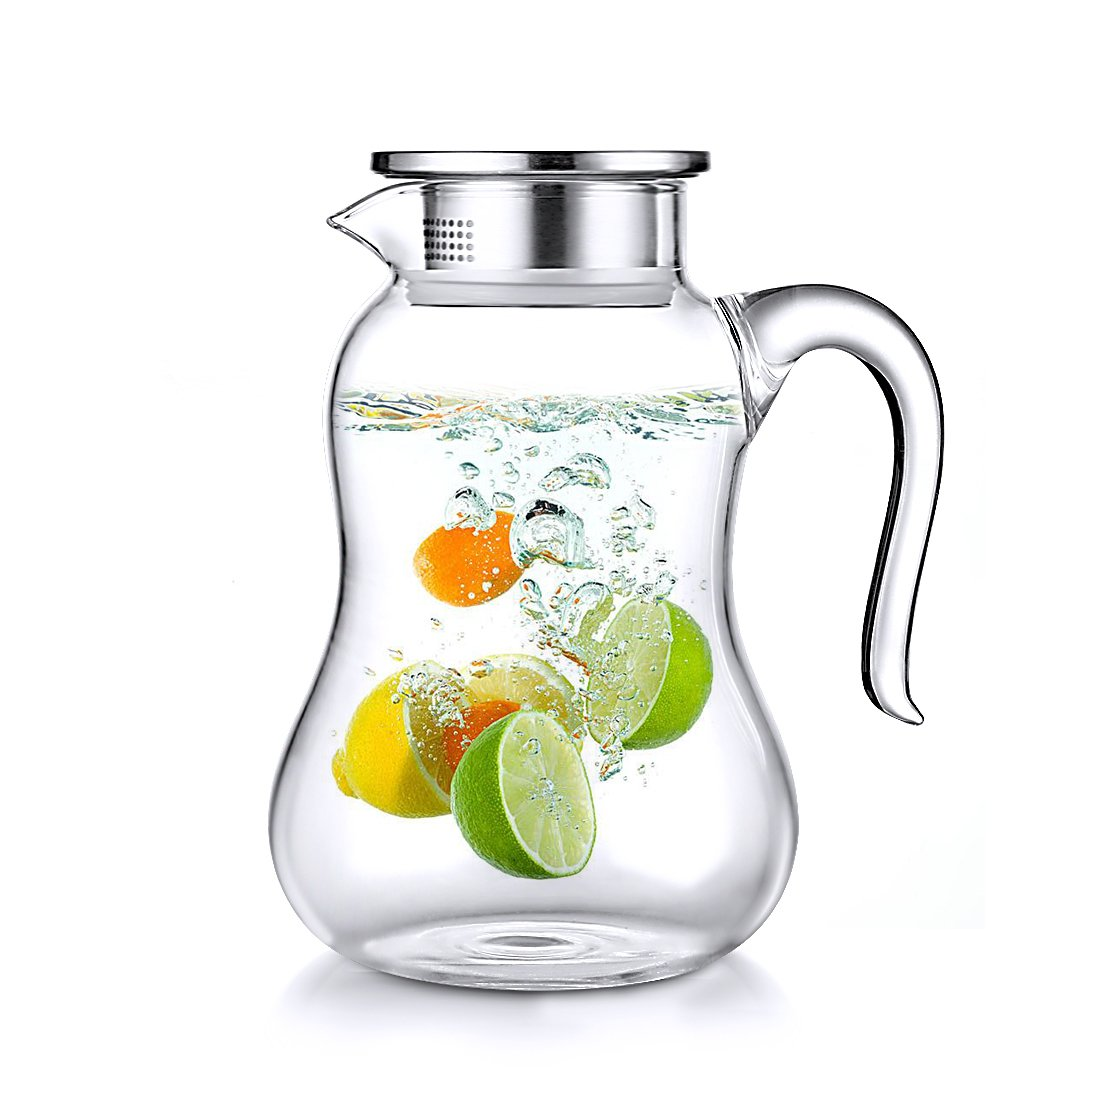 ONEISALL Borosilicate Glass Water Pitcher with Stainless Steel Lid - 1500ML/51oz Carafes with handle infuser Juice Tea Milk DHTUS695